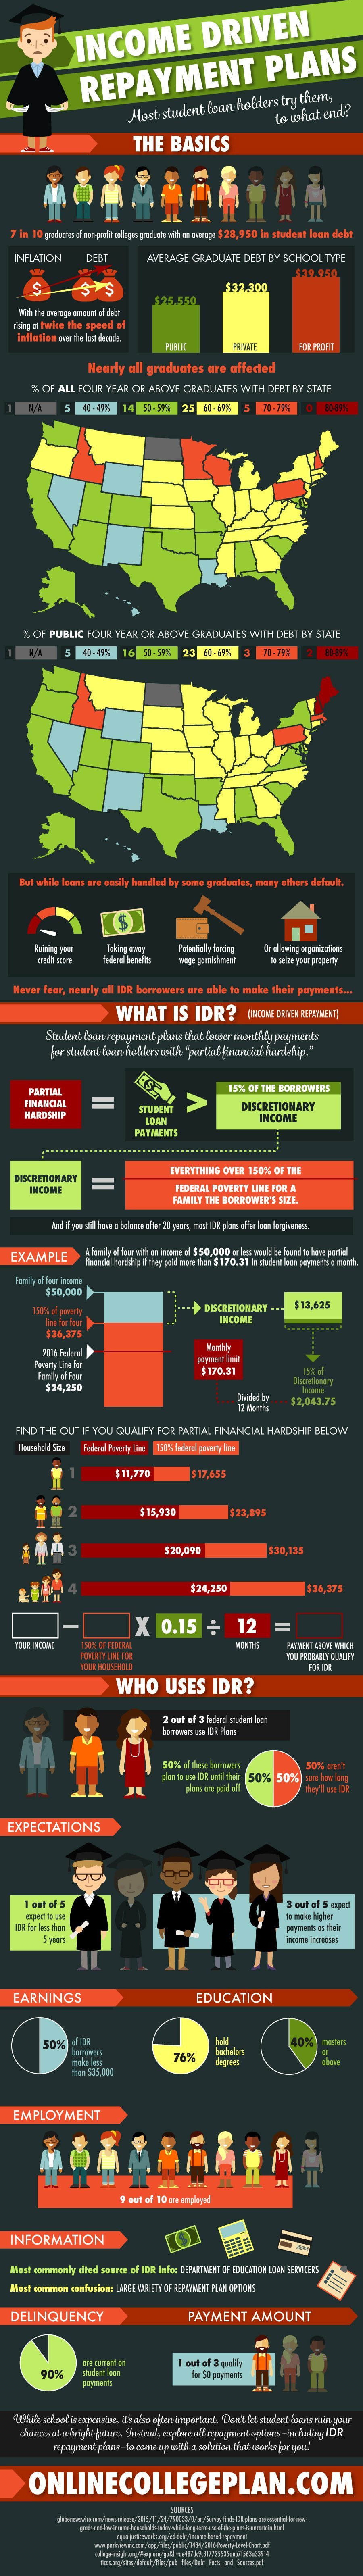 Income Driven Repayment IDR